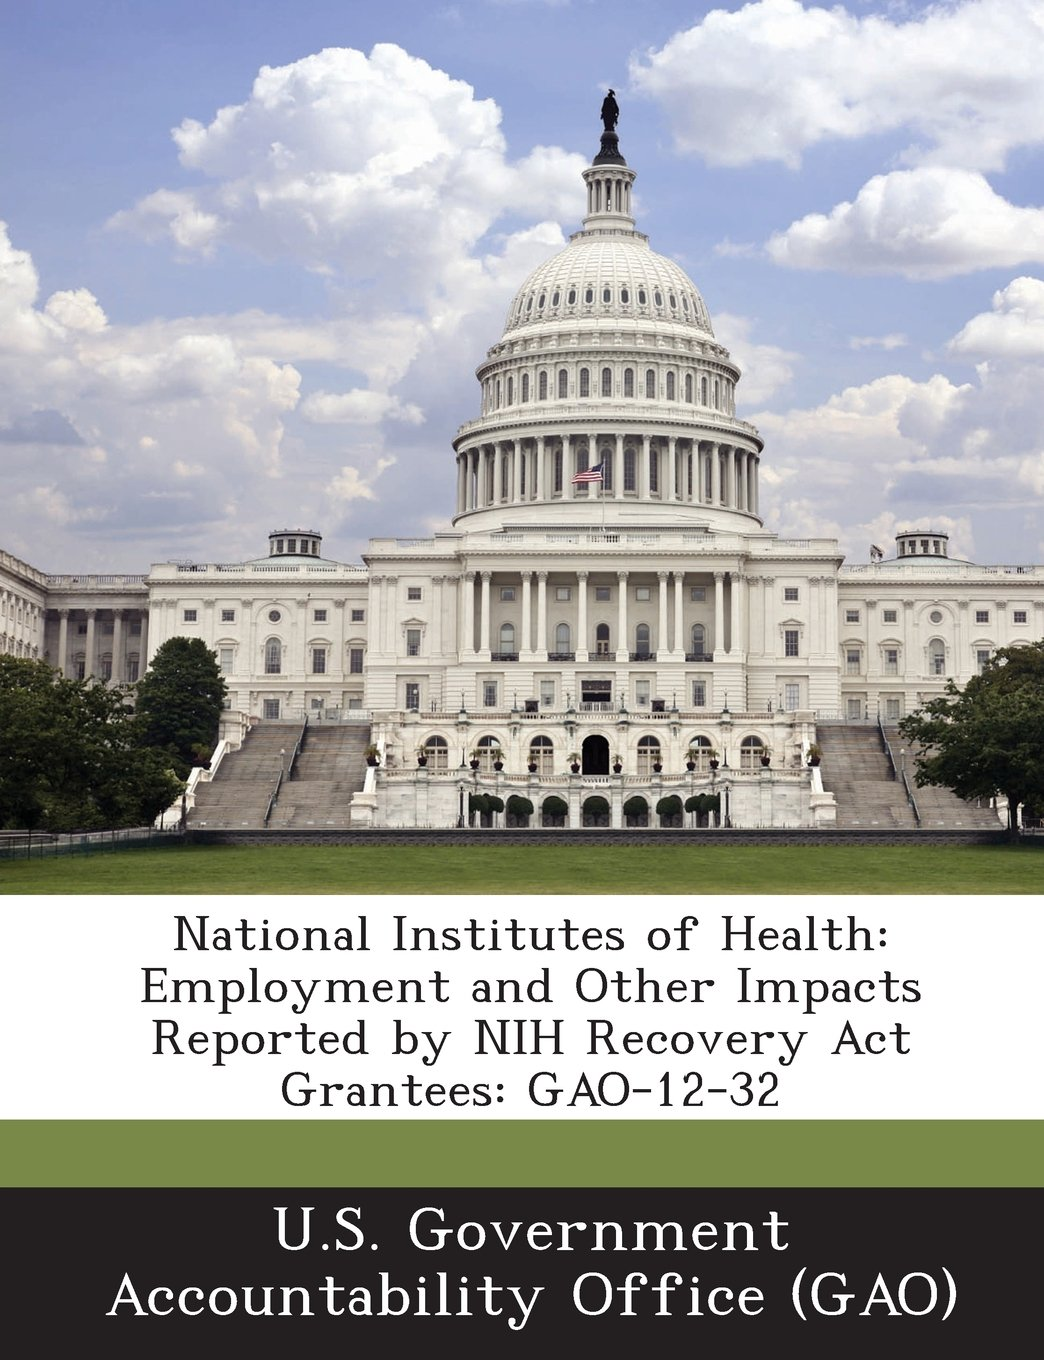 National Institutes of Health: Employment and Other Impacts Reported by Nih Recovery ACT Grantees: Gao-12-32 ebook